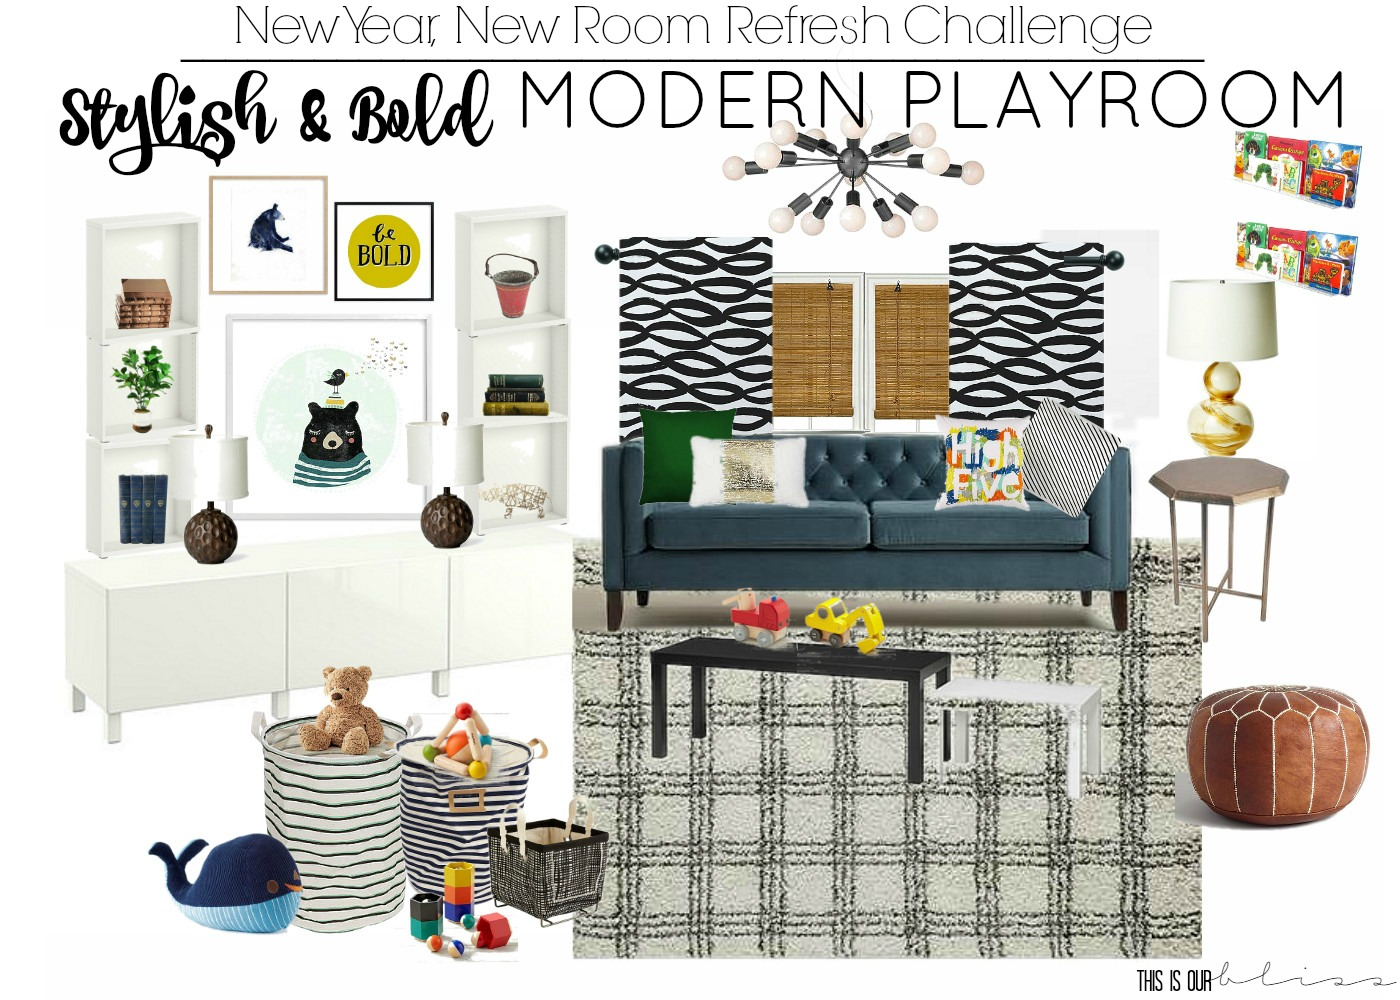 Stylish and Bold Modern Playroom Design Board | Functional Storage and seating for the Playroom | This is our Bliss